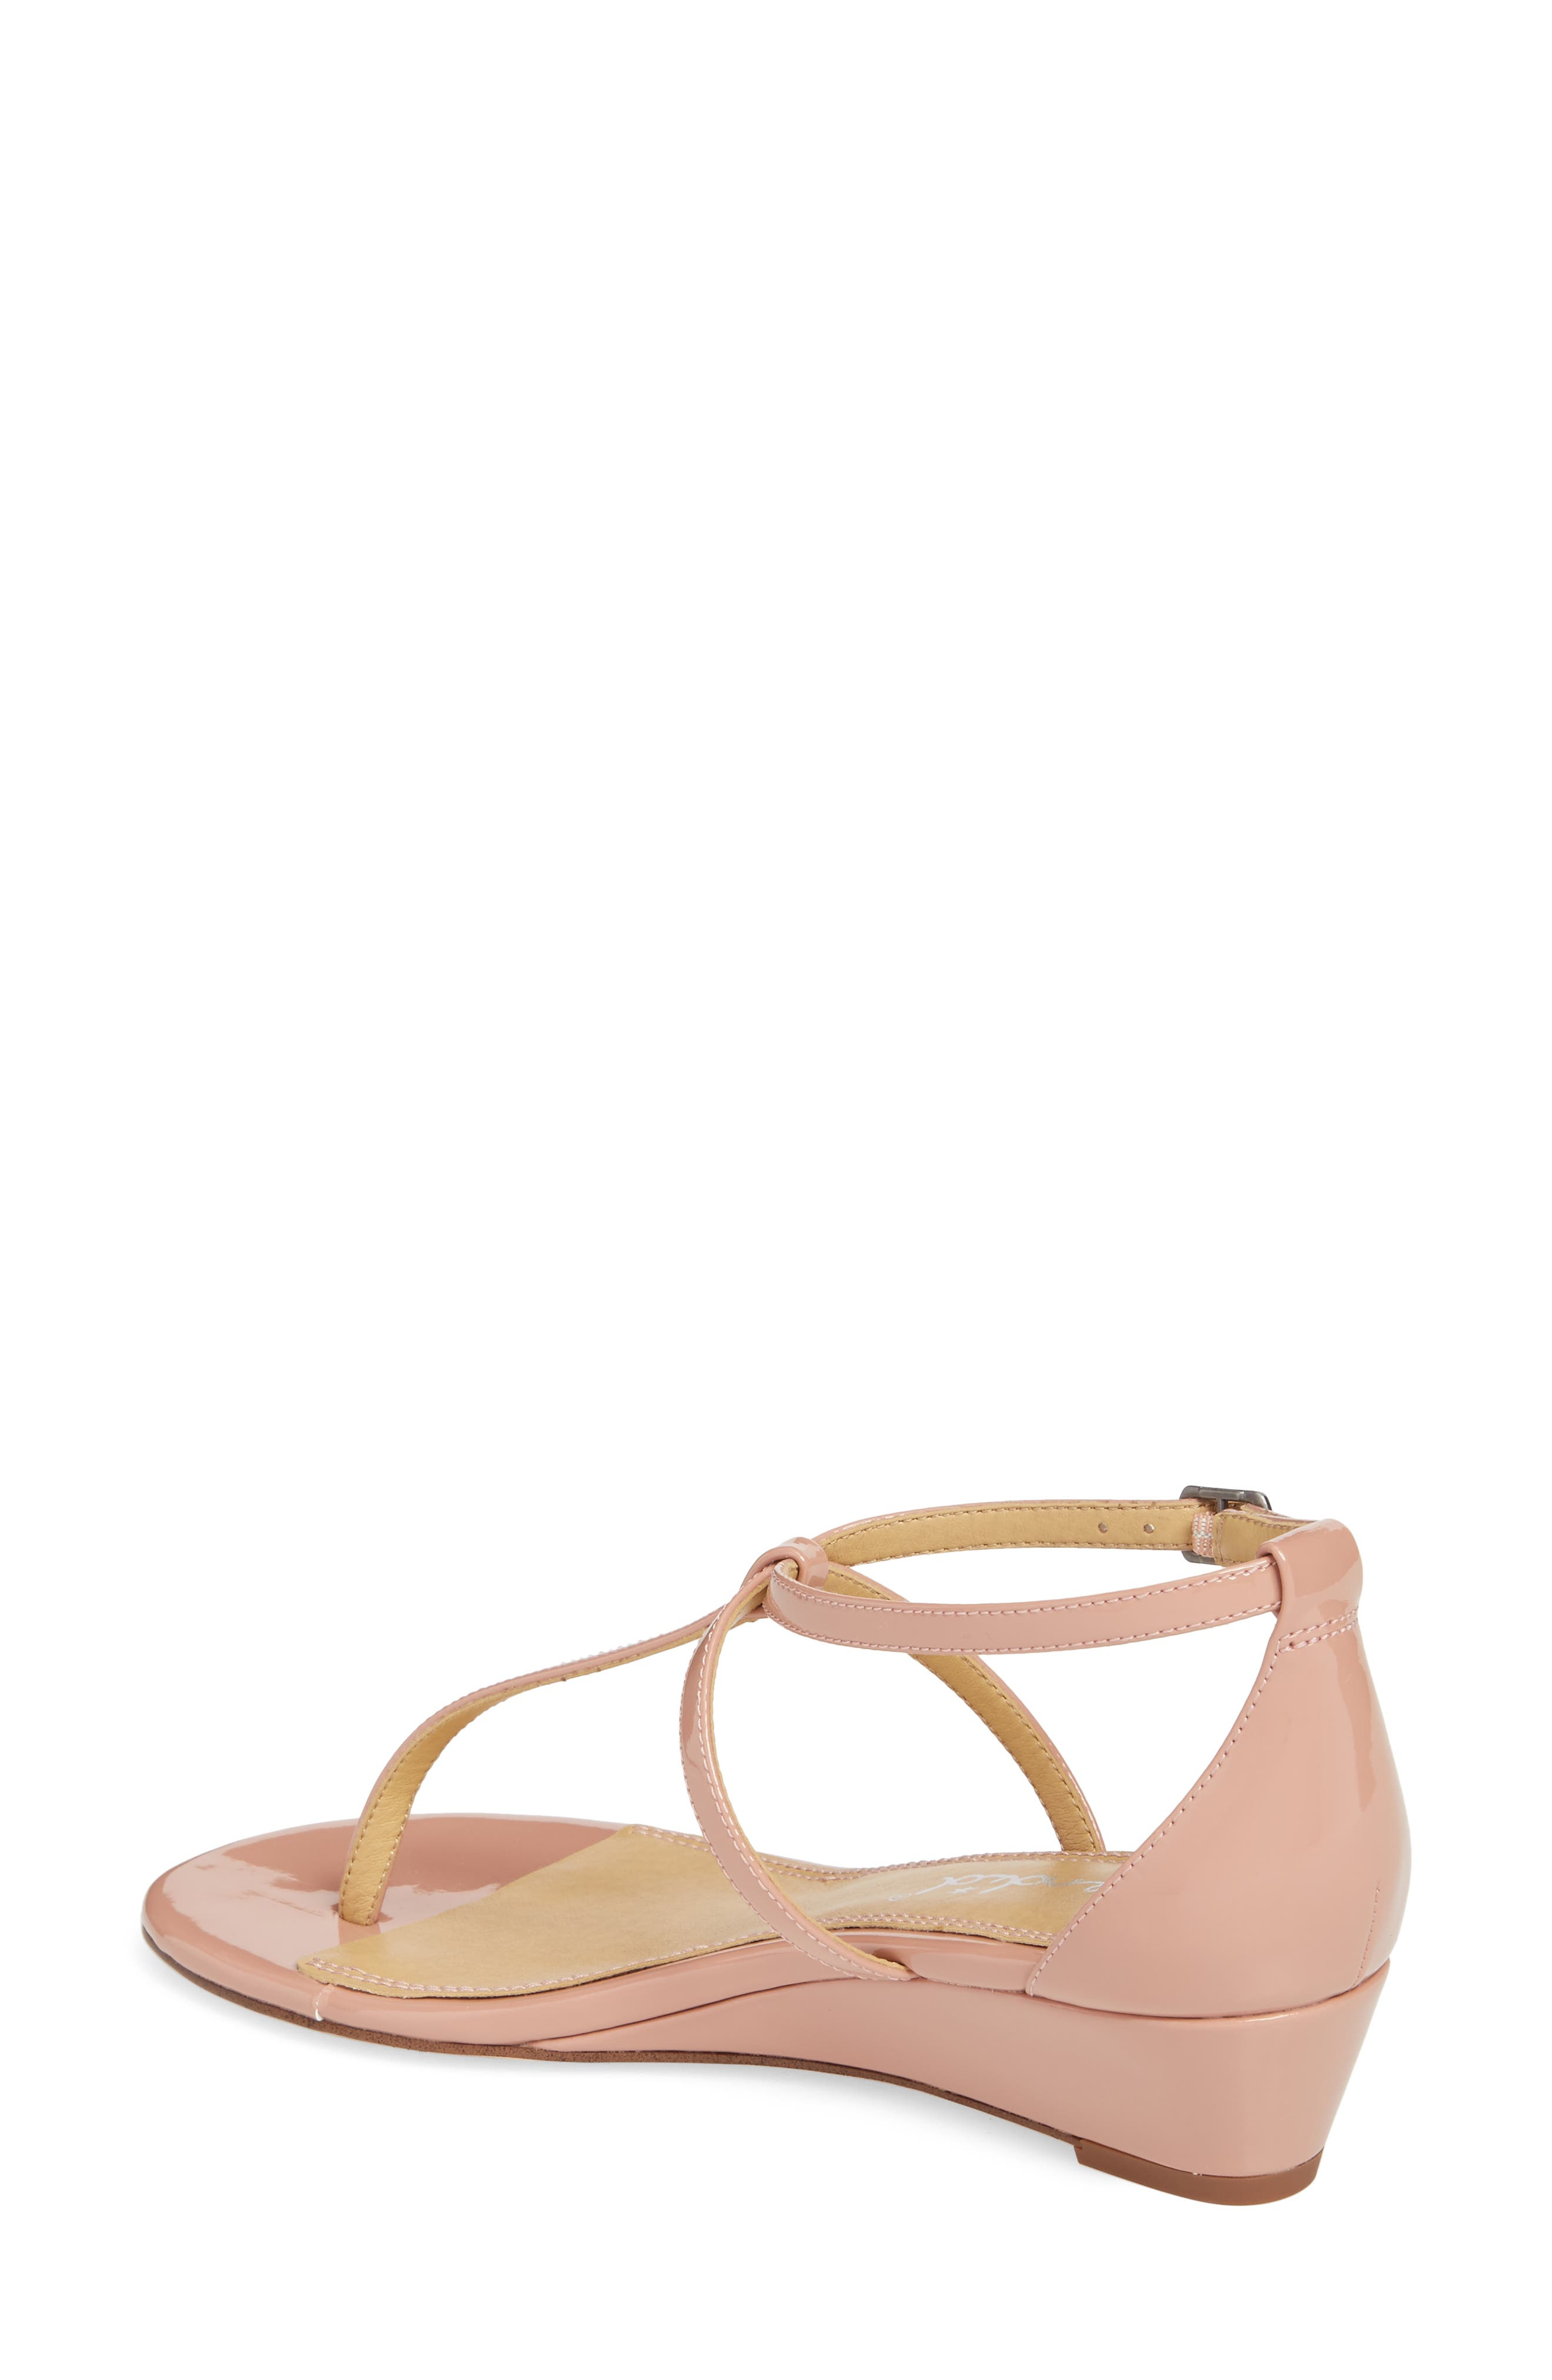 Bryce T-Strap Wedge Sandal,                             Alternate thumbnail 11, color,